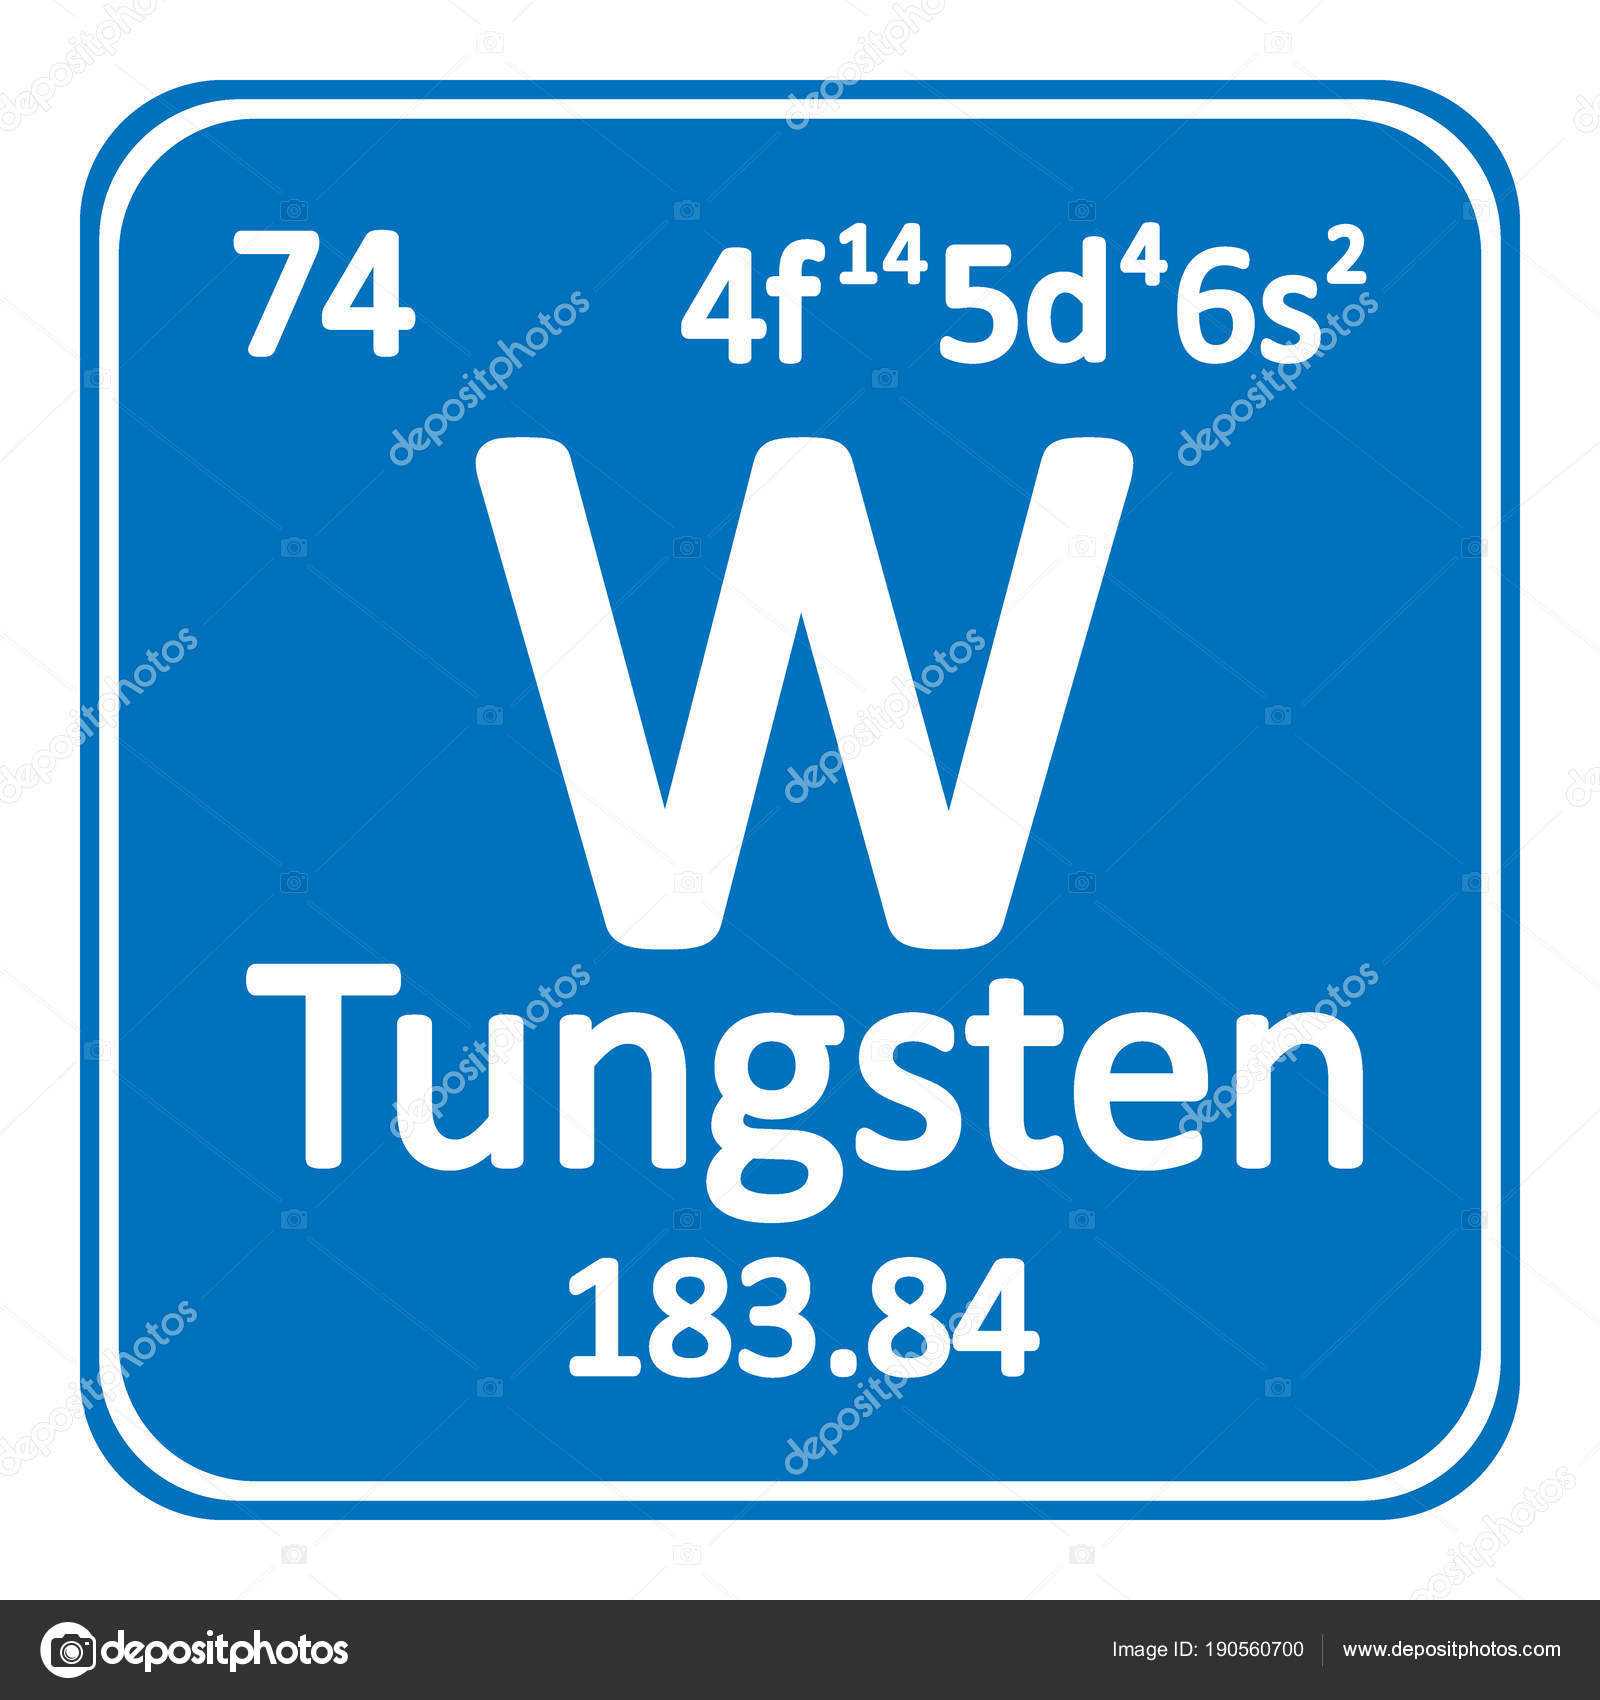 Periodic table element tungsten icon stock vector konstsem periodic table element tungsten icon stock vector urtaz Image collections